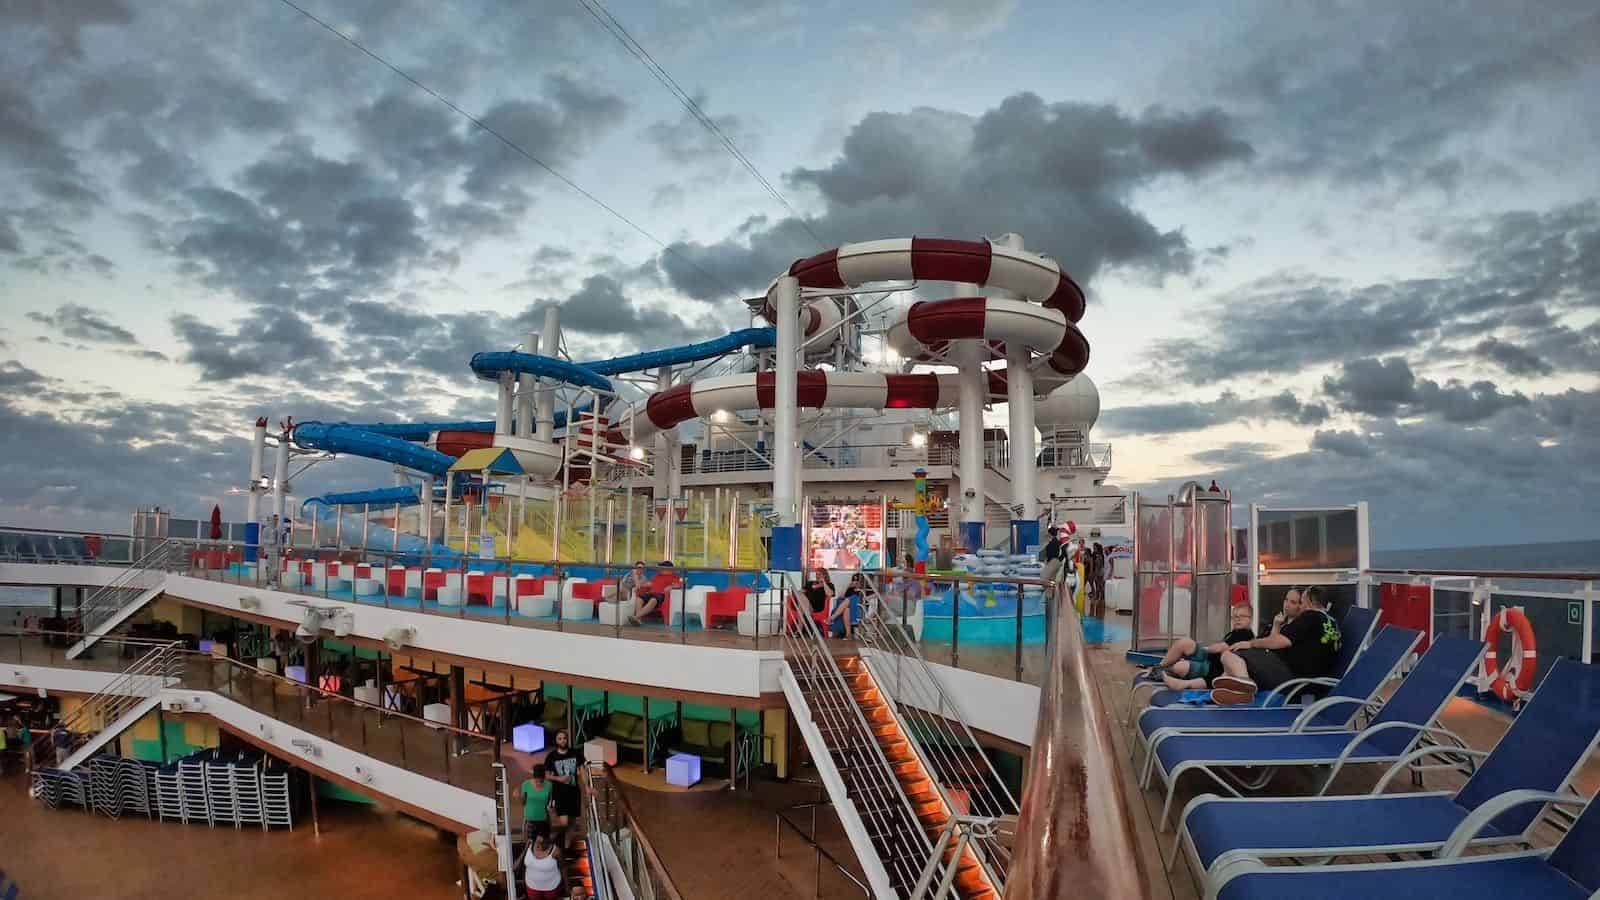 Carnival Horizon Review – 8 Days Aboard Carnival's Newest Ship to the Southern Caribbean